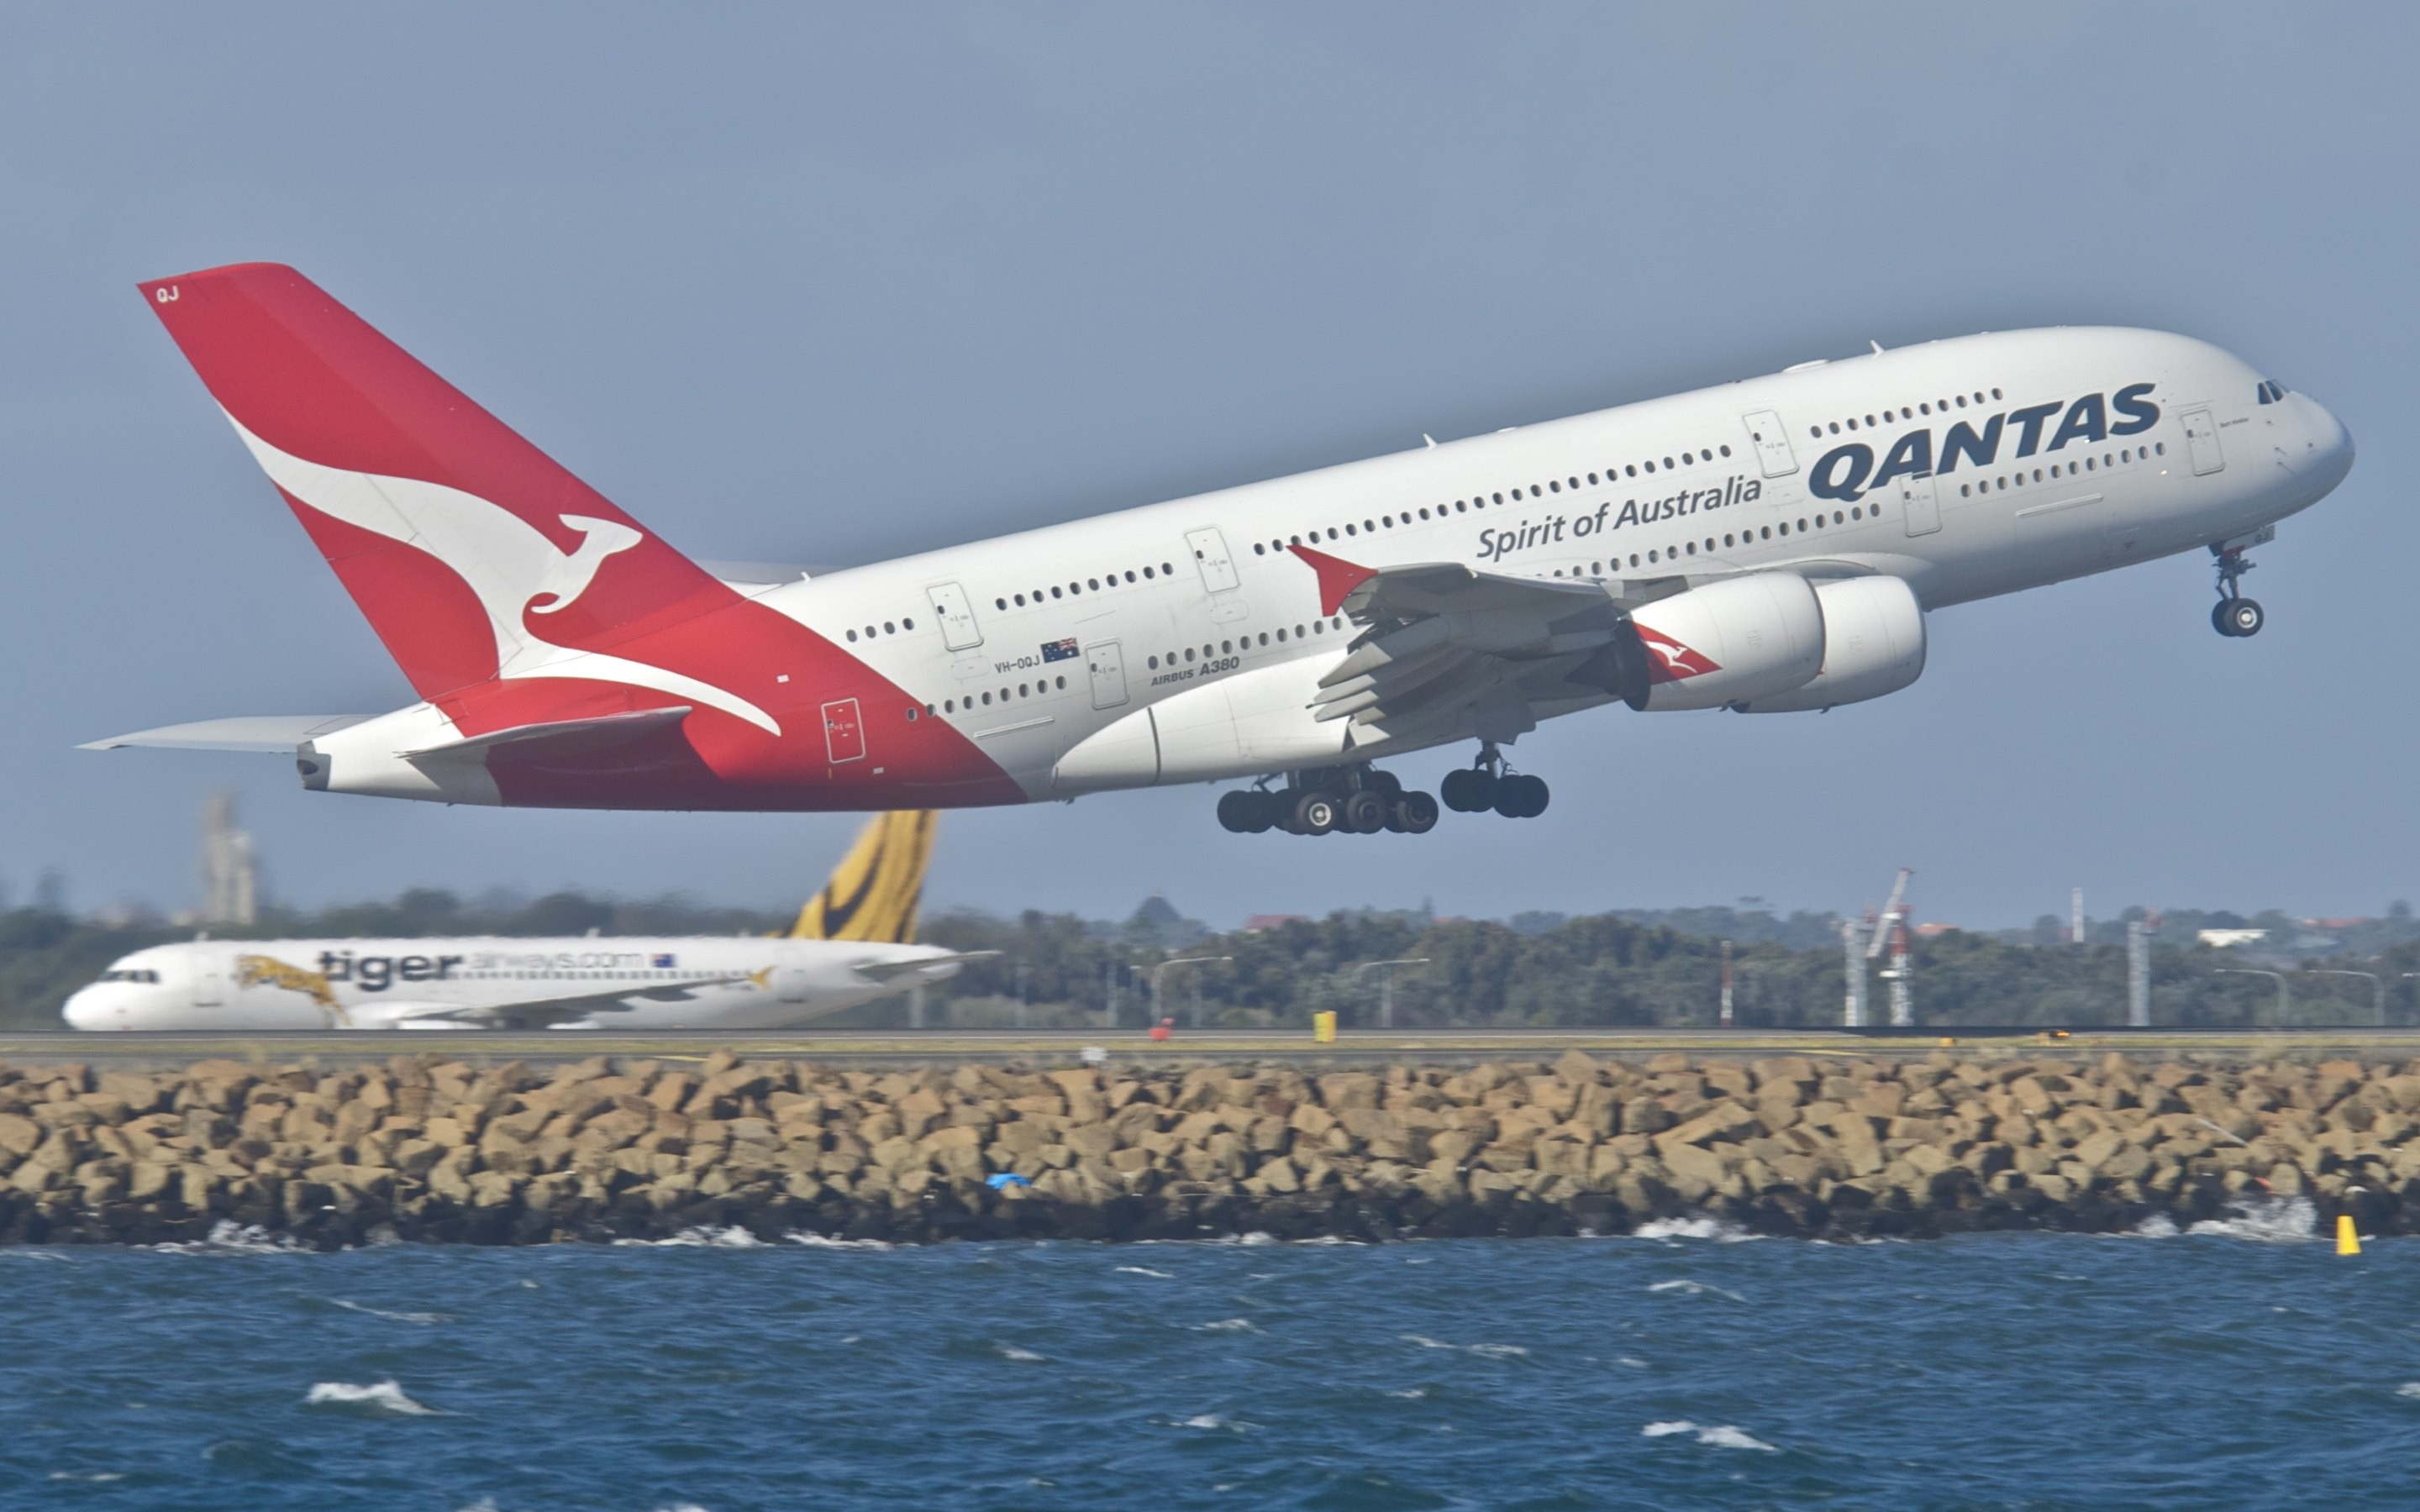 2880x1800 Two new pictures with the Qantas Airbus A380-842 in flight · By courtesy of  Aero Icarus, these 2 wallpapers are shared under CC license and optimized  below ...